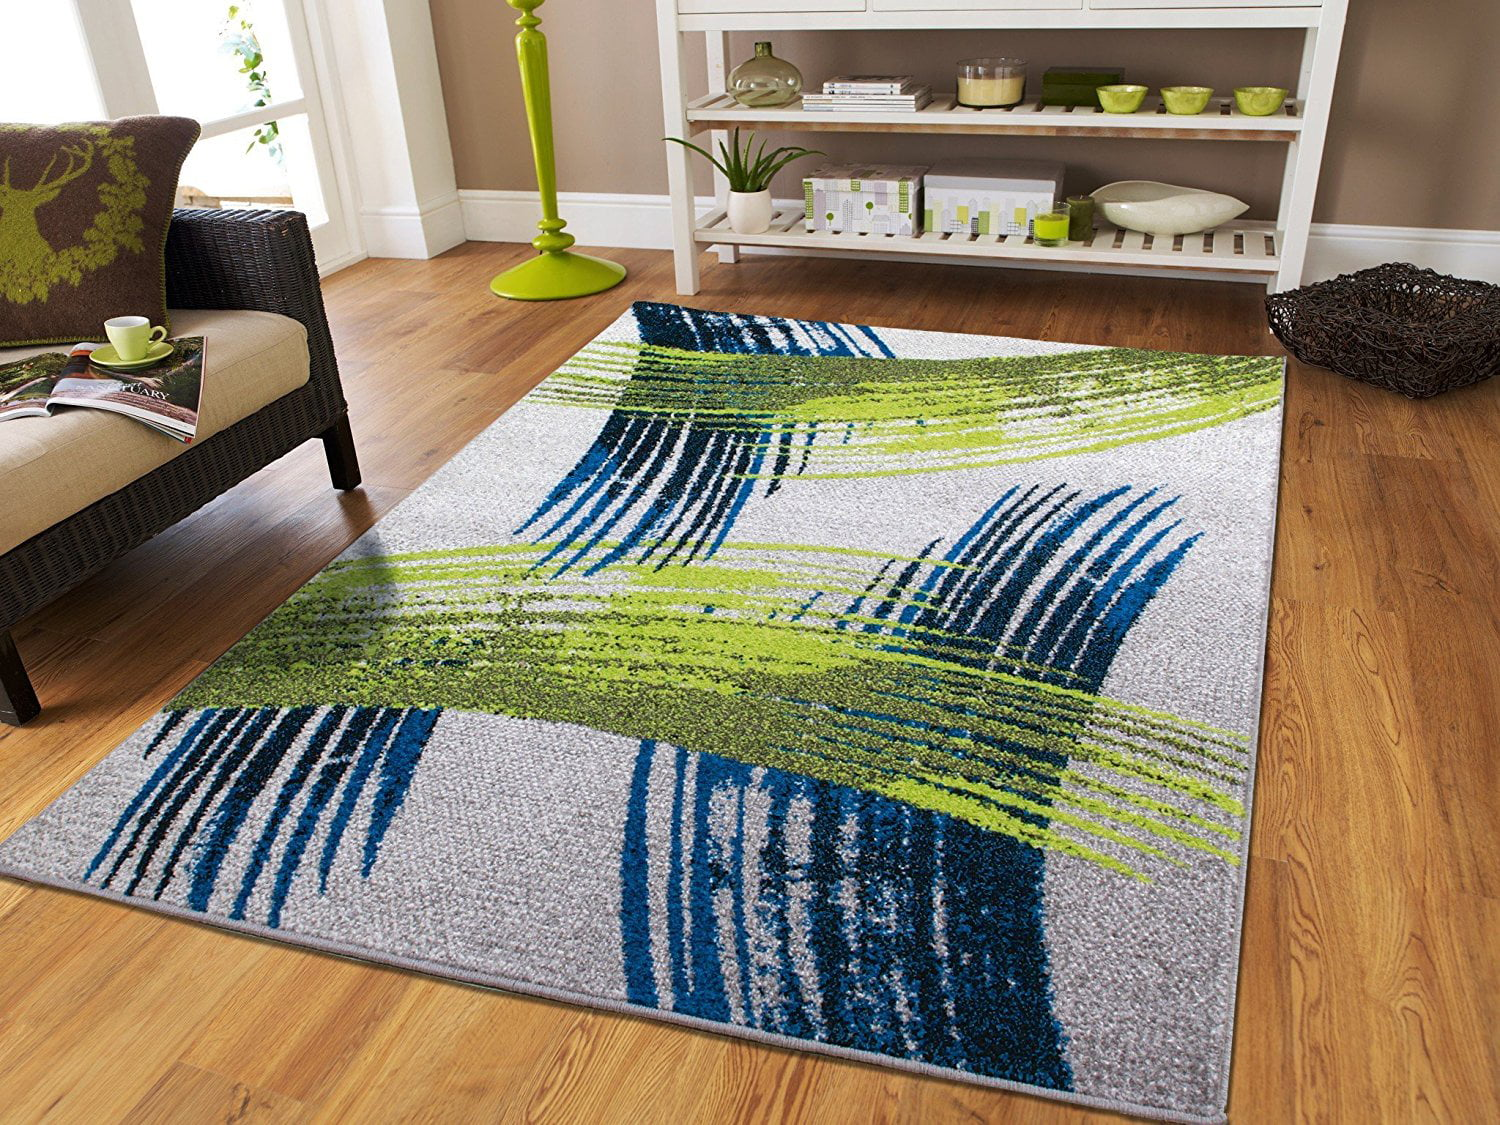 Large Contemporary Area Rugs 8 by 10 Grey Blue Green Area Rugs on